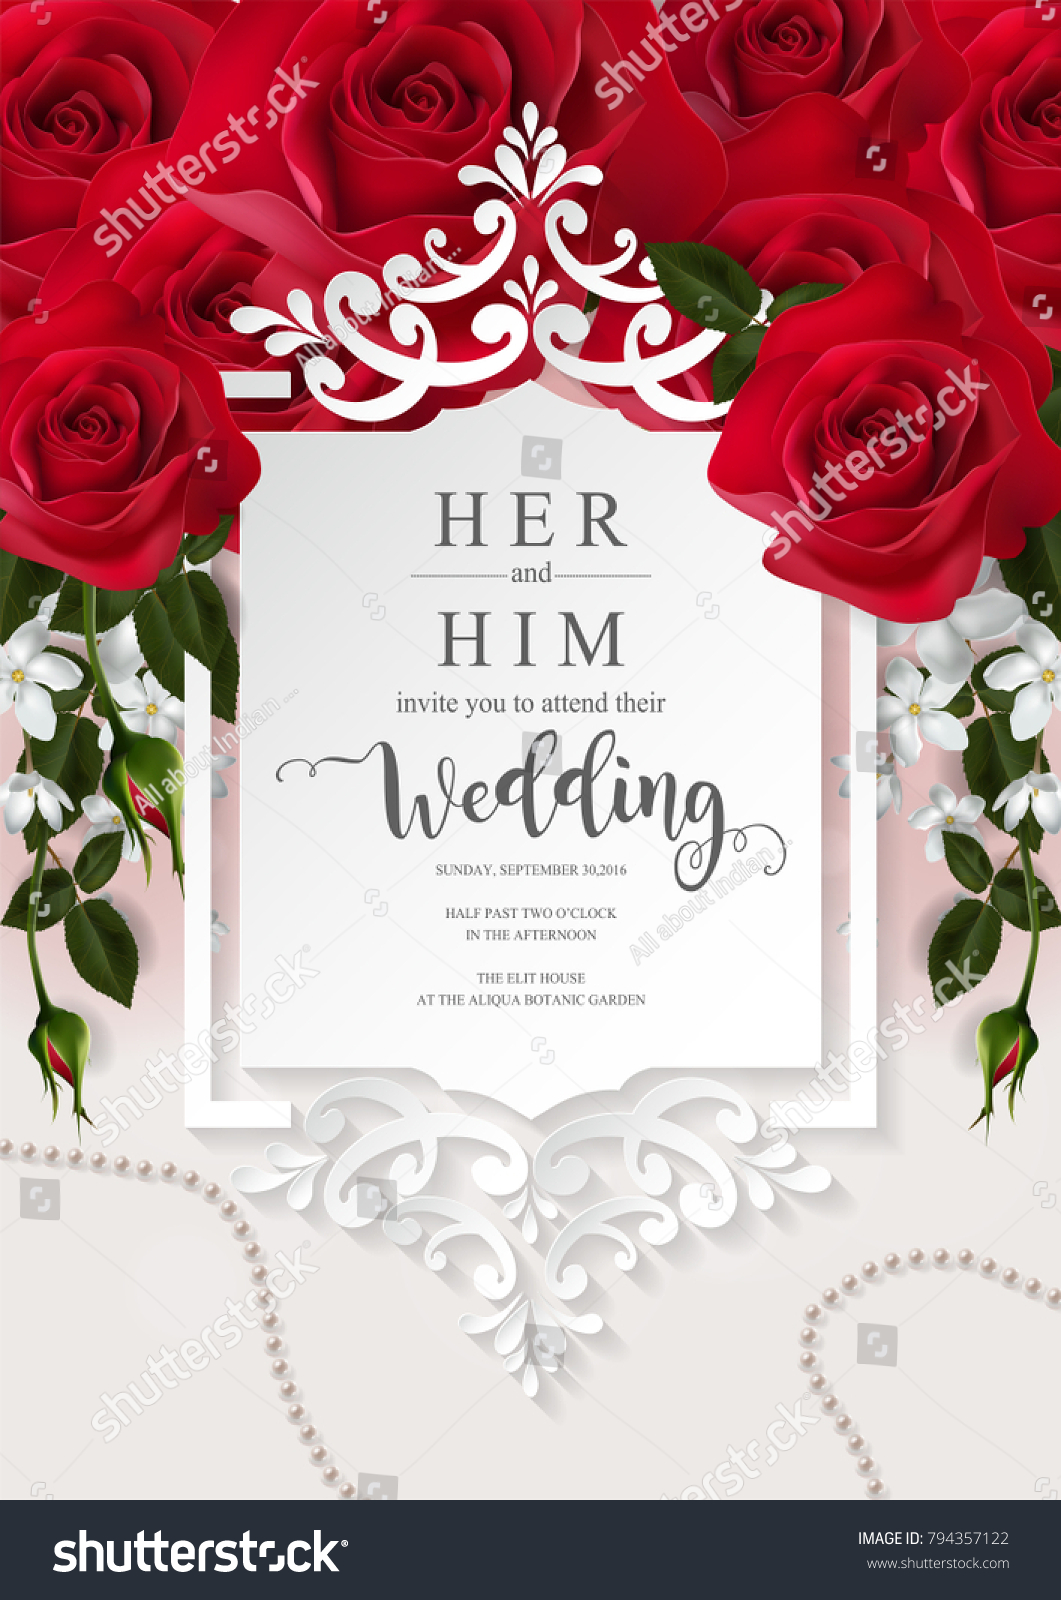 Wedding Invitation Card Templates Realistic Beautiful Stock Vector ...